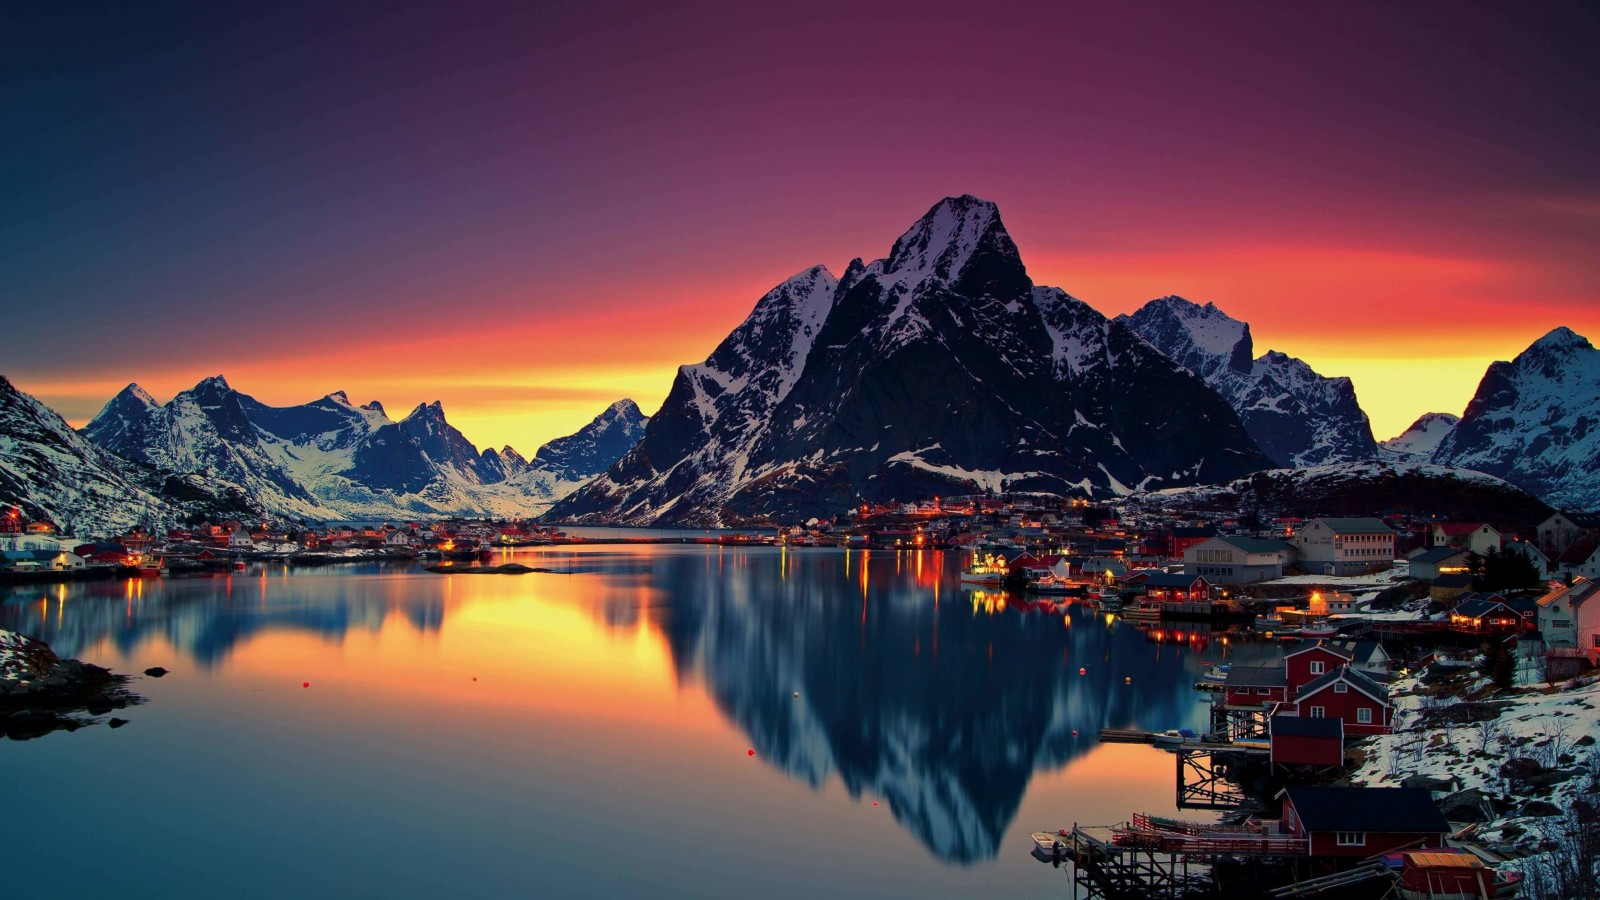 Lofoten Islands, Norway Wallpaper for Desktop 1600x900